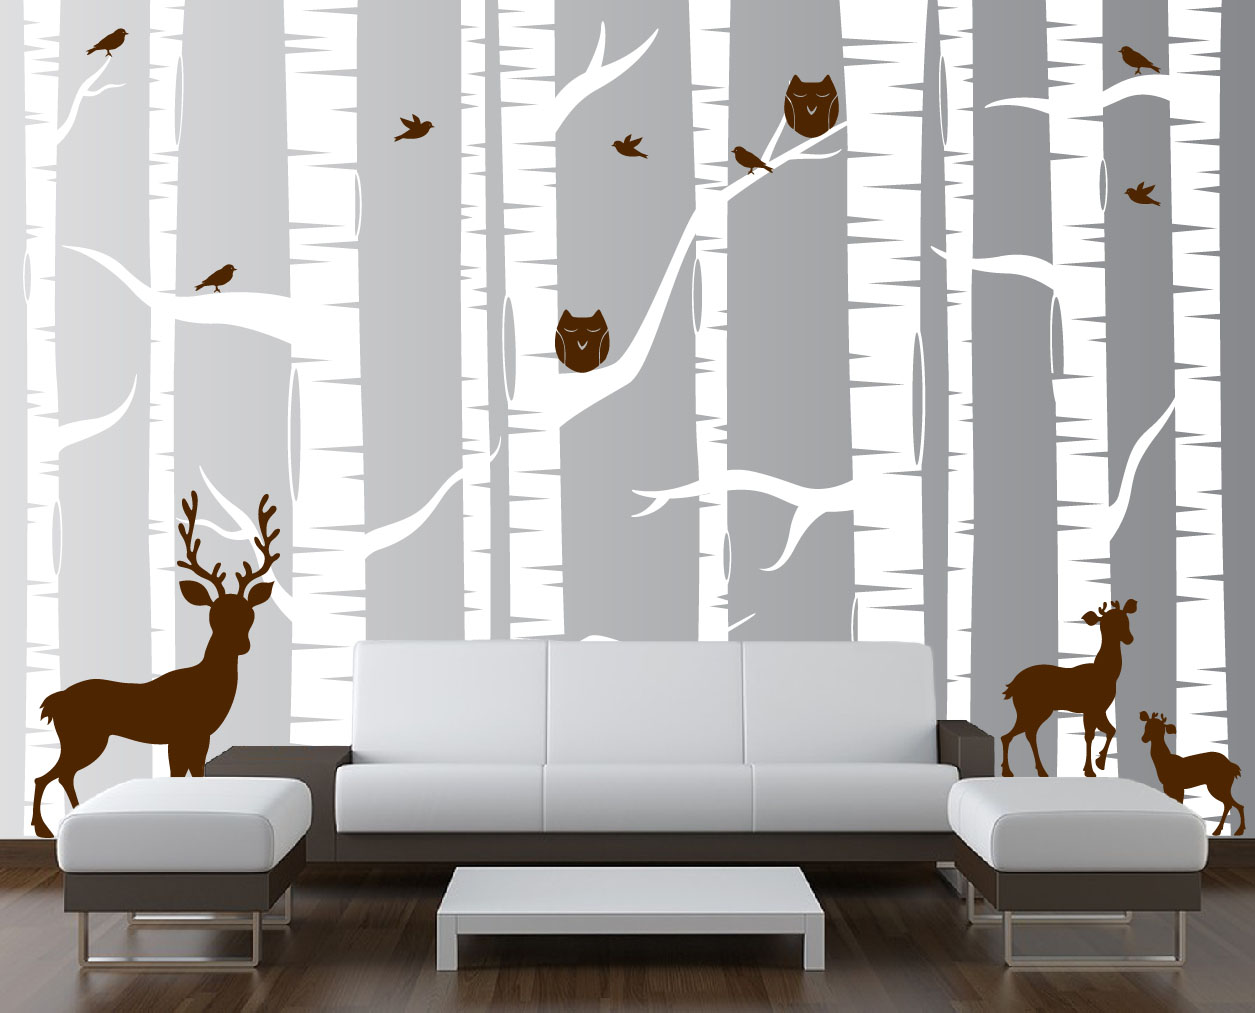 Birch tree forest set vinyl wall decal owls deer 1323 birch tree wall decal white woodland 1323g amipublicfo Choice Image